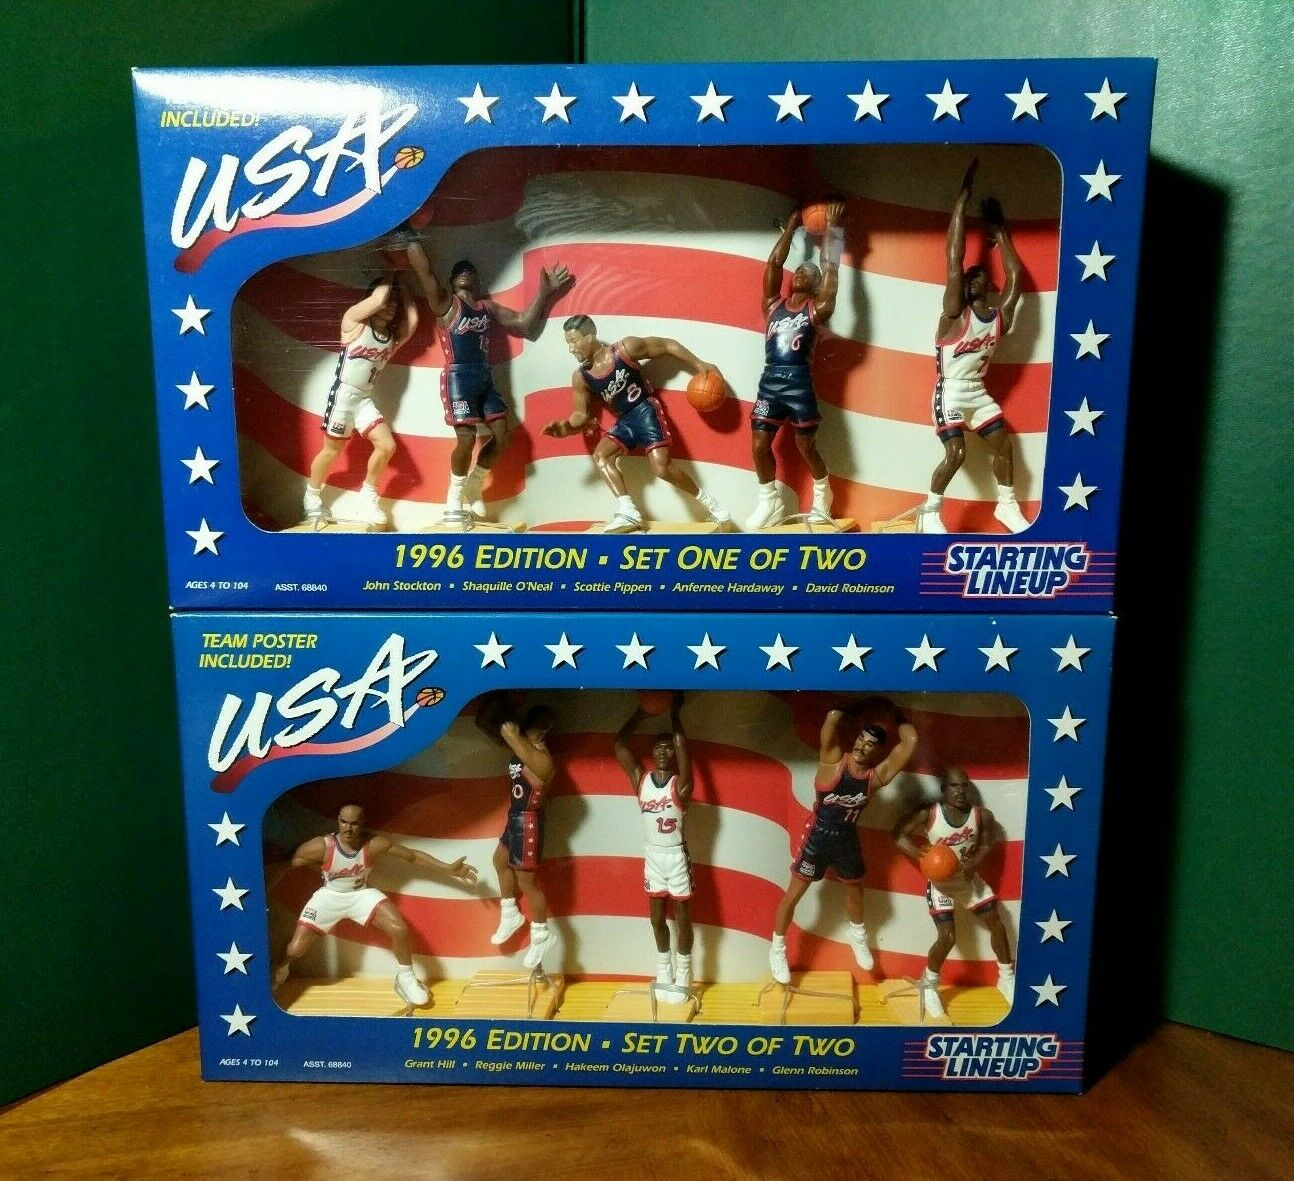 Starting Line Up 1996 USA Olympic Basketball Dream Team Both Sets NRFB NEW